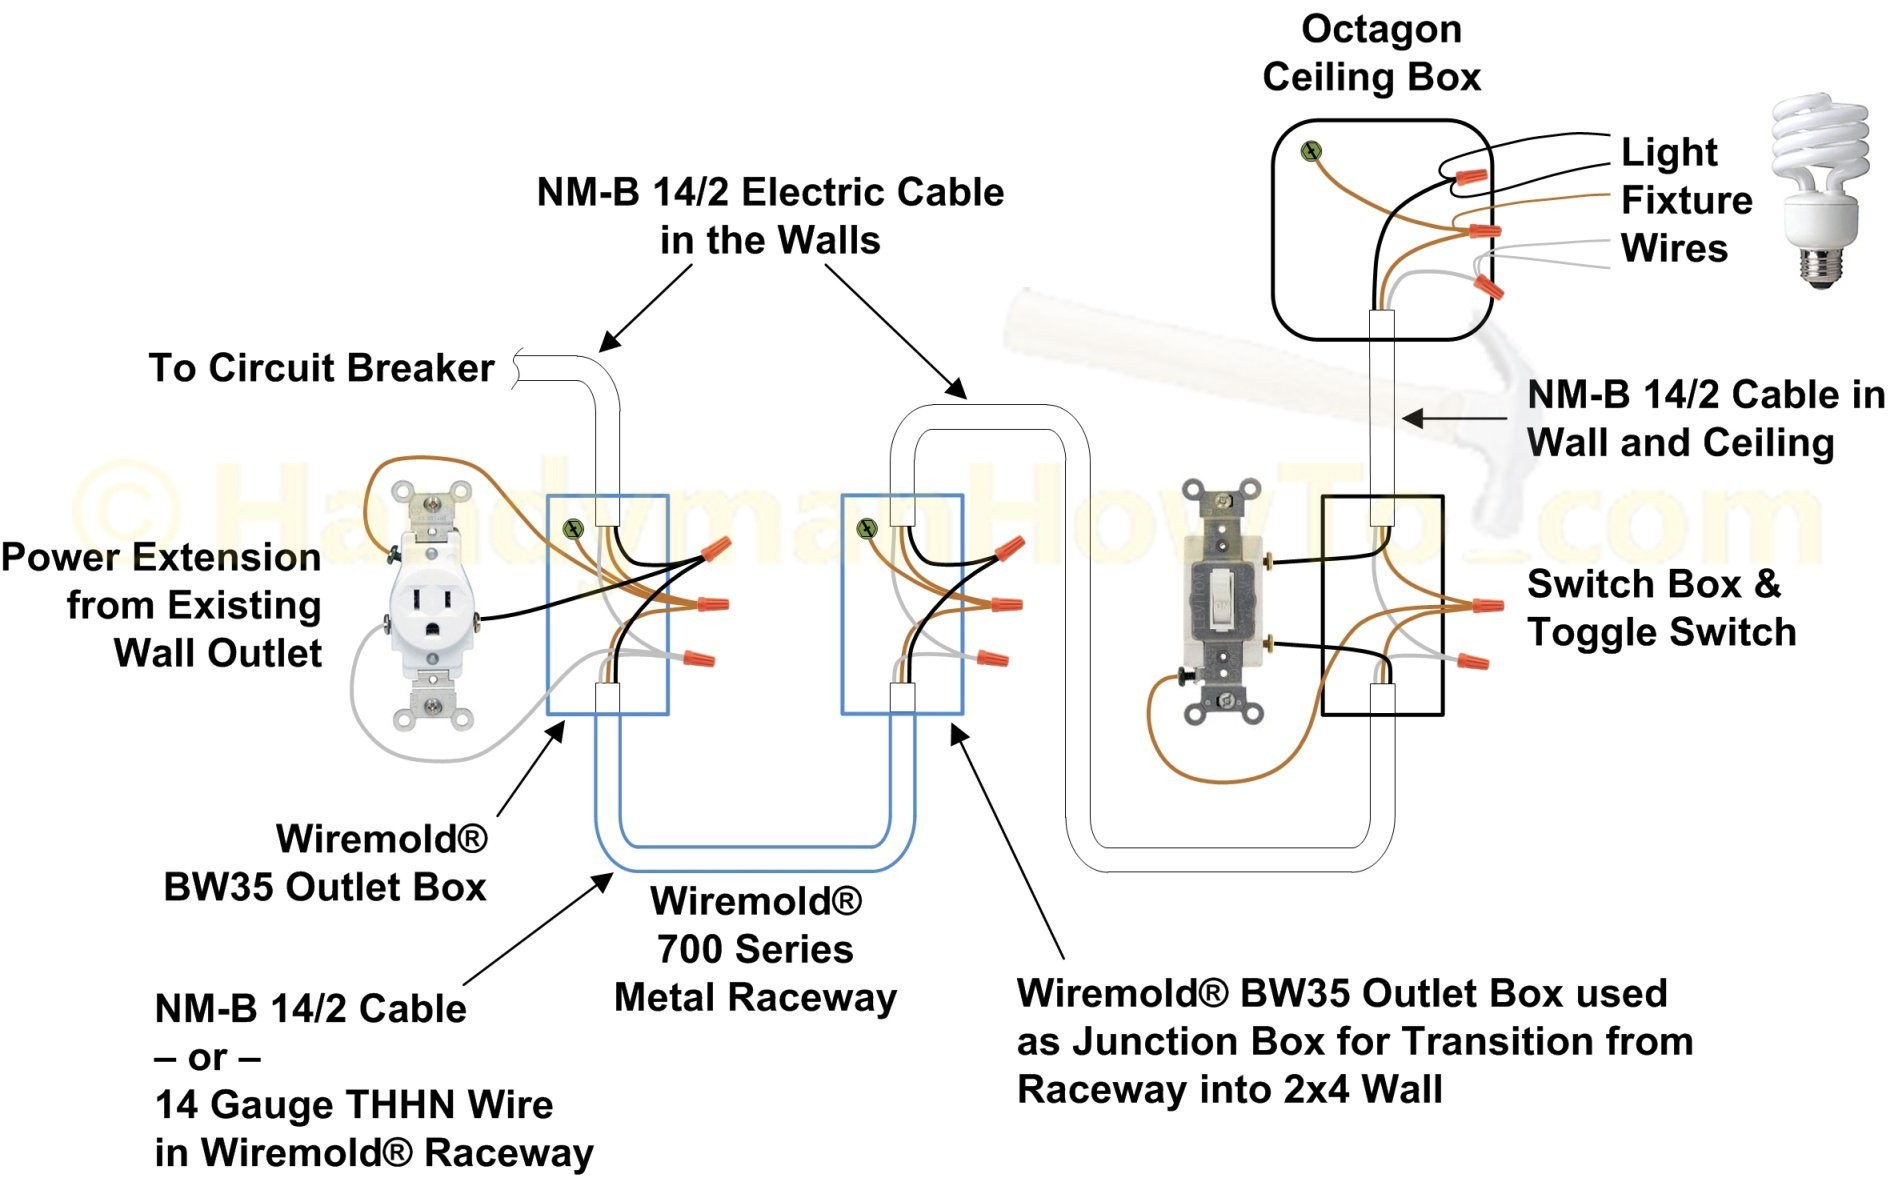 How To Wire A Closet Light With Wiremold Wall Plug Wiring Plastic Wiring Diagram For Electrical Receptacles